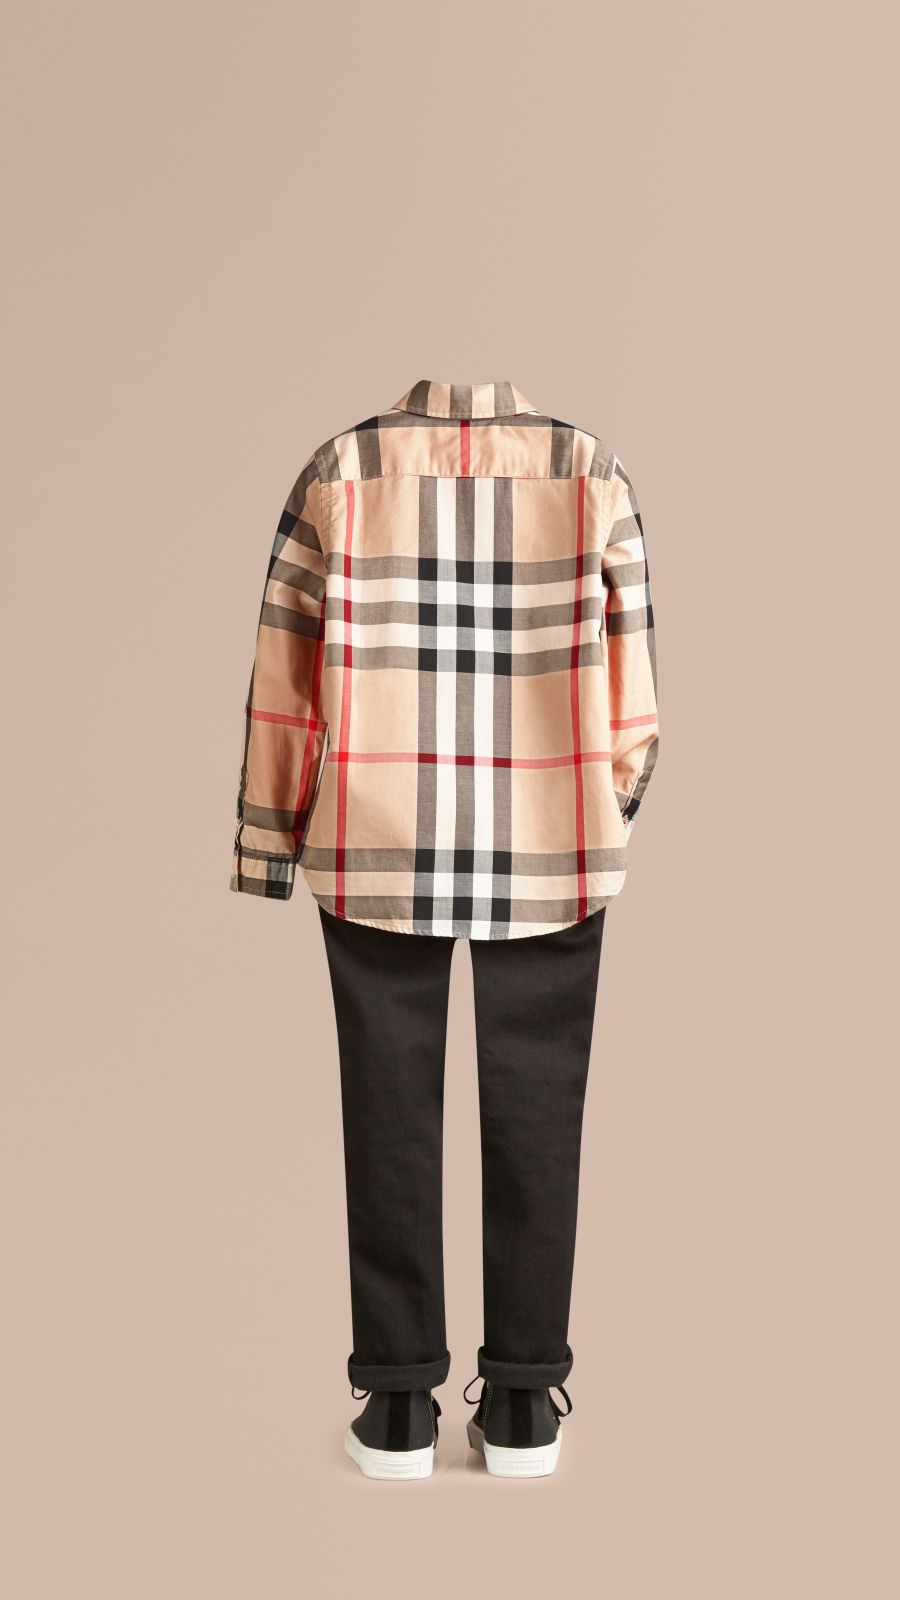 New classic Check Cotton Button-Down Shirt - Image 3